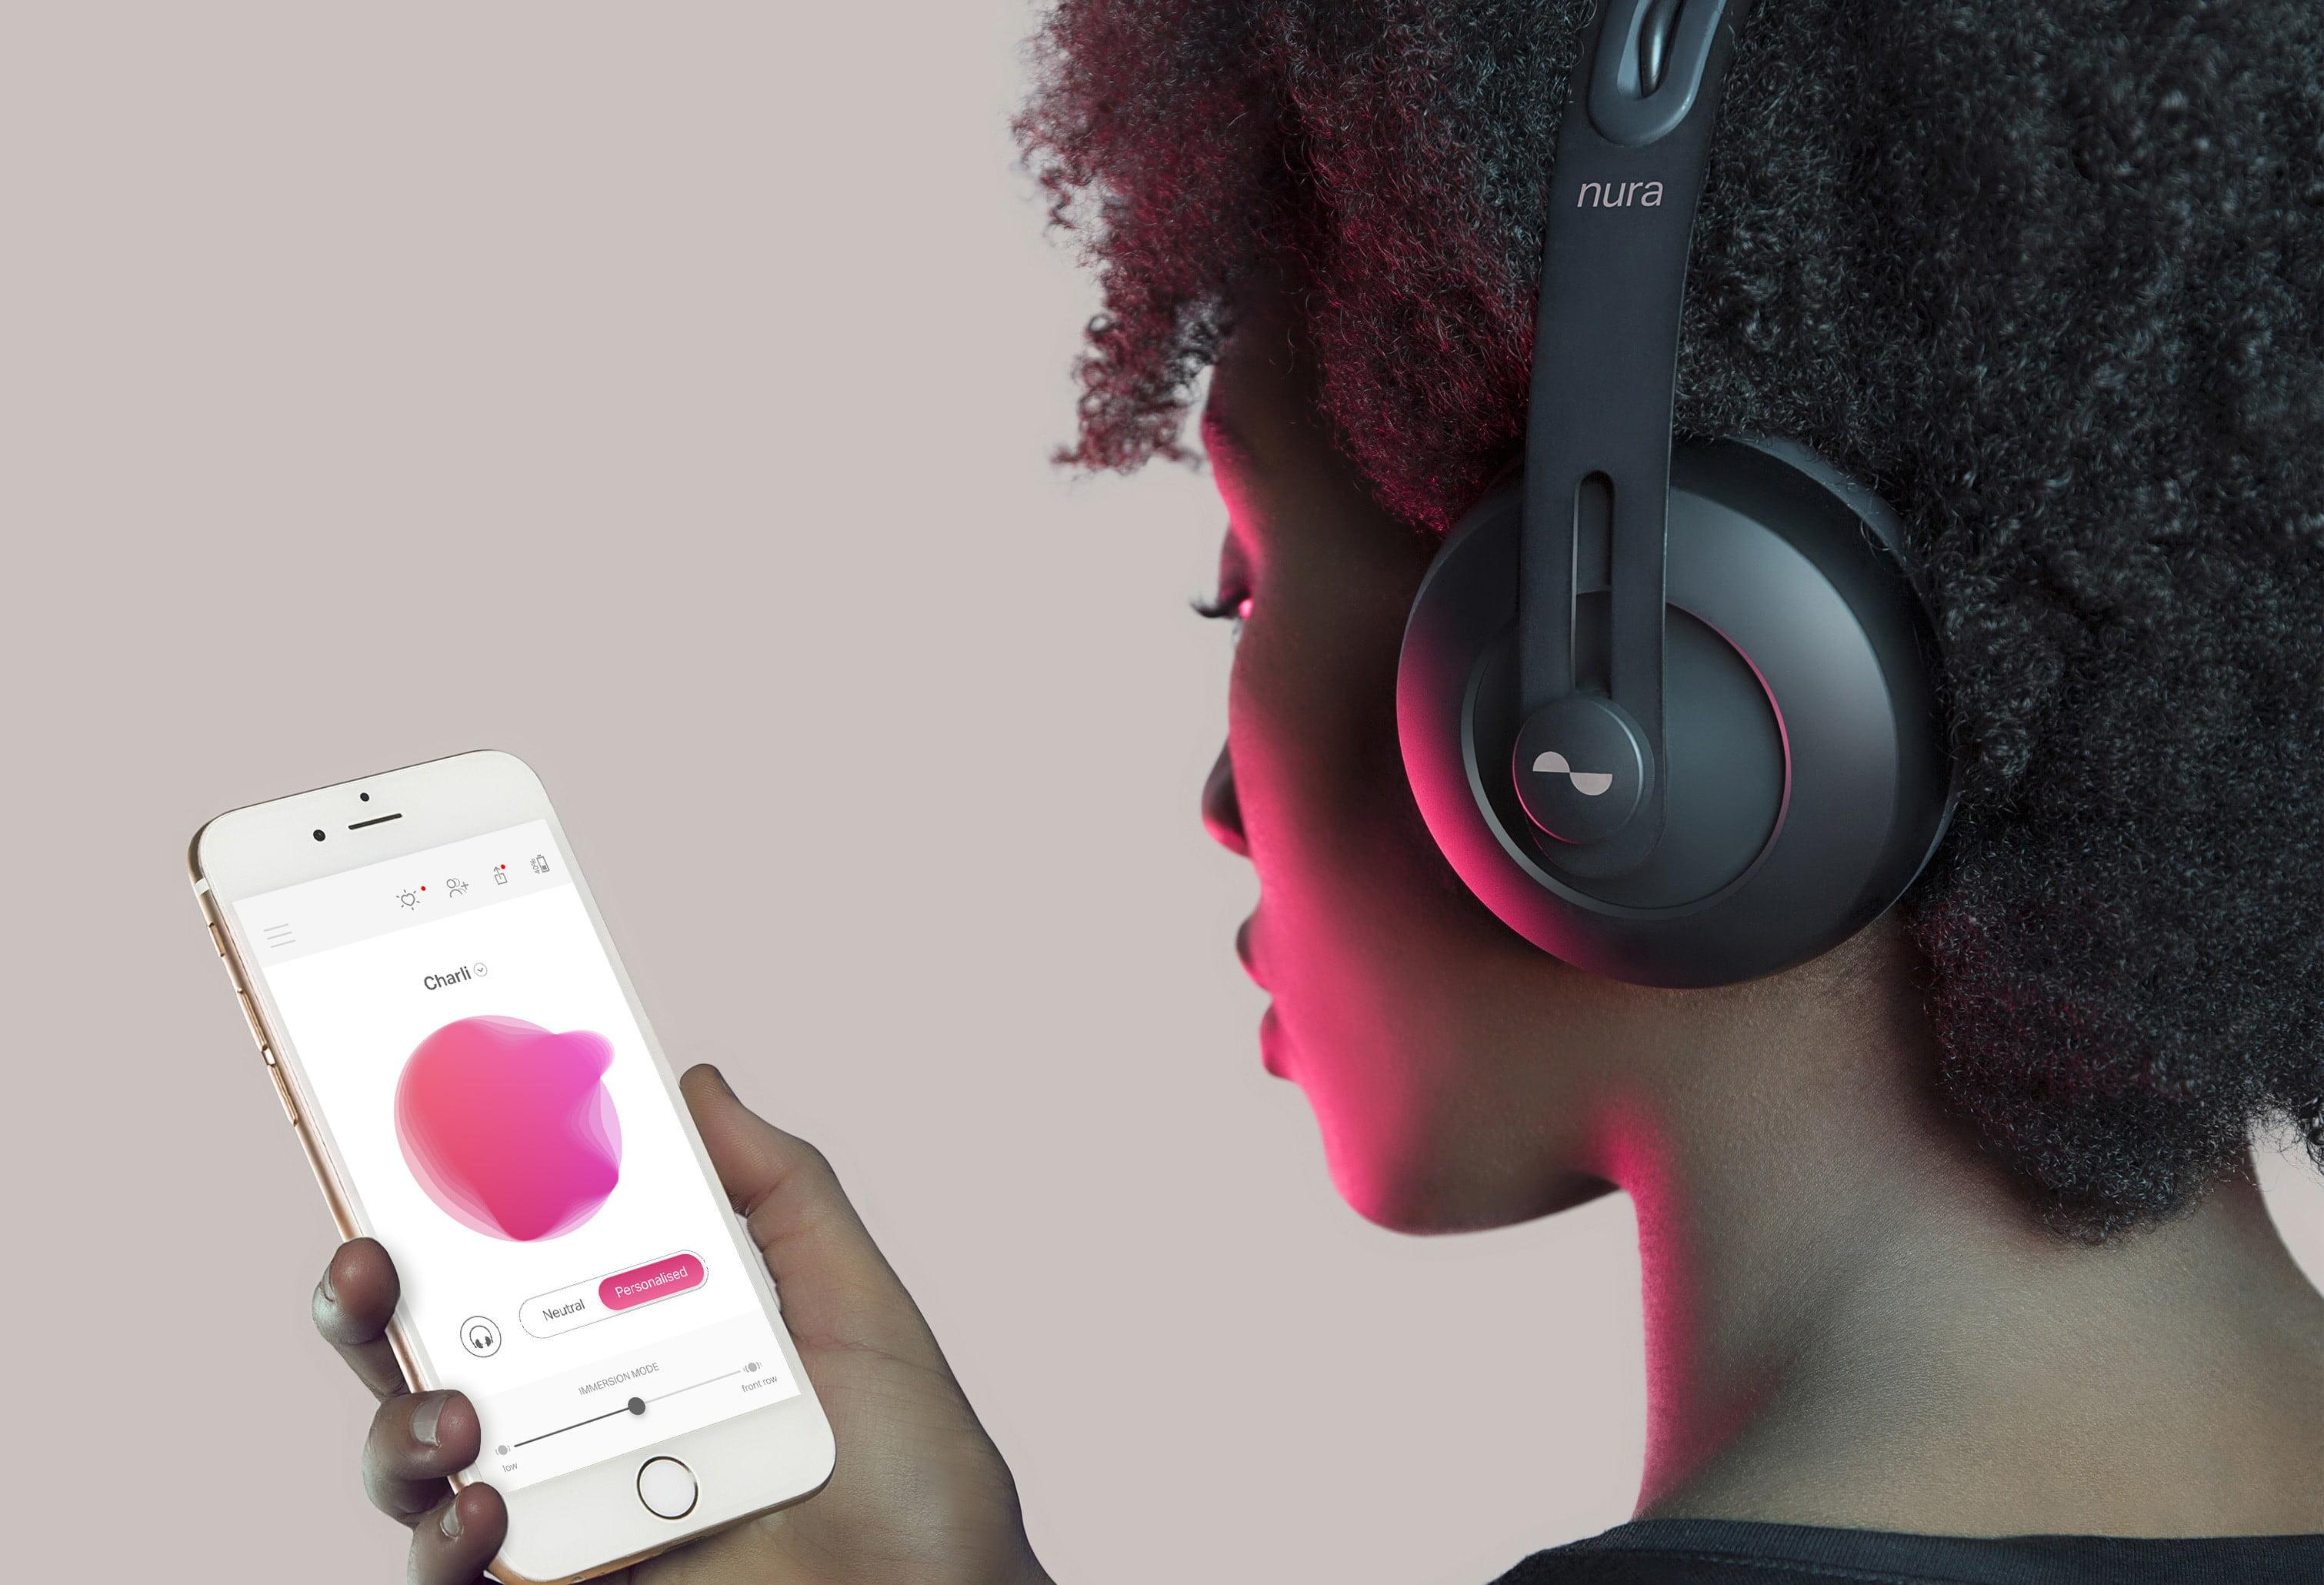 Forget fingerprints. These headphones can scan your ear canal for identification